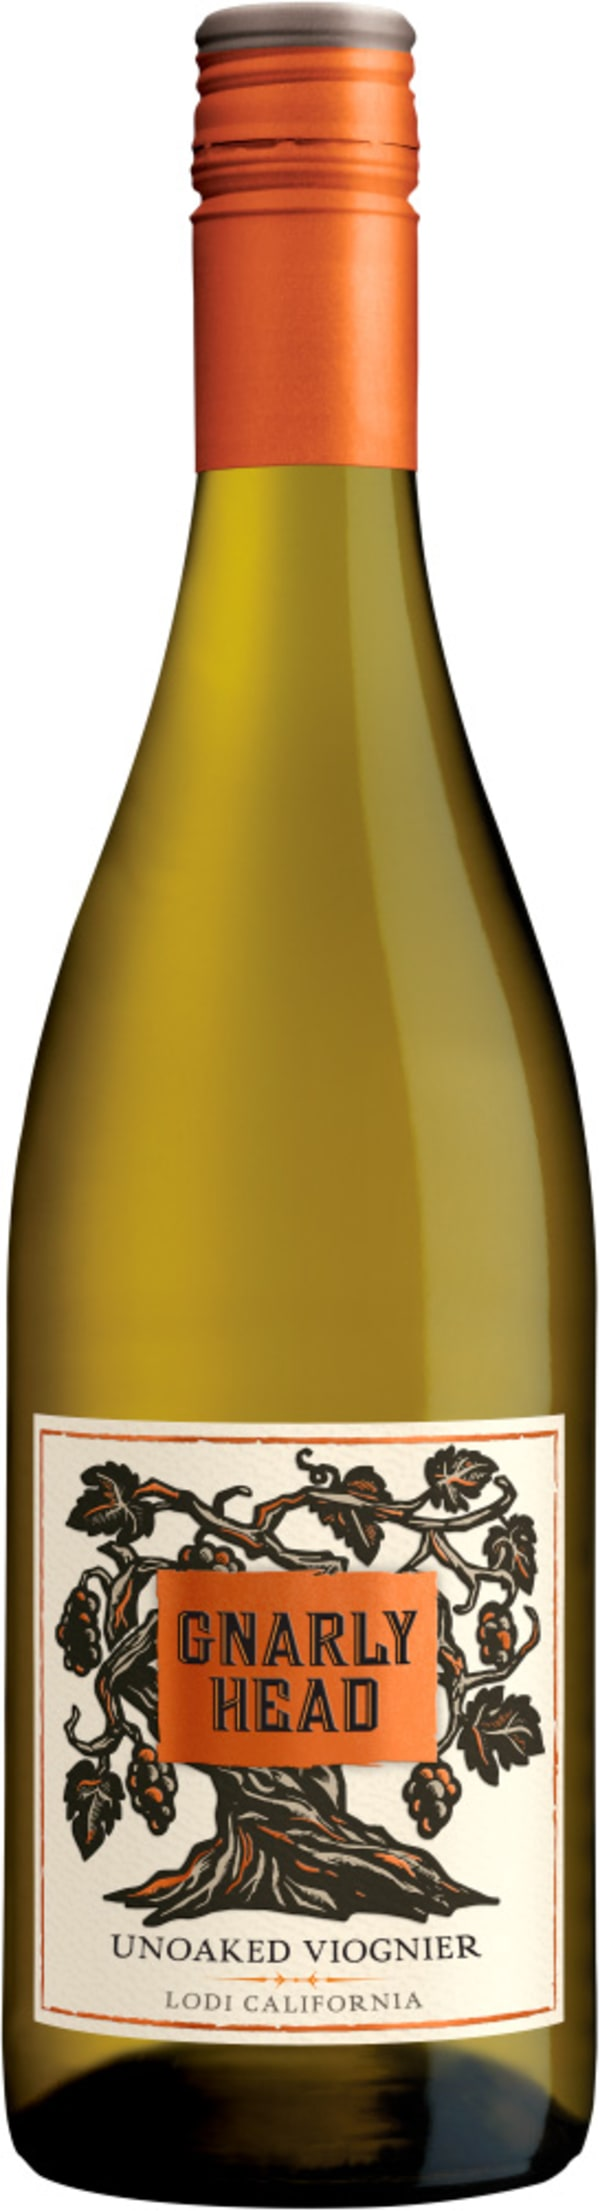 Gnarly Head Viognier 2015